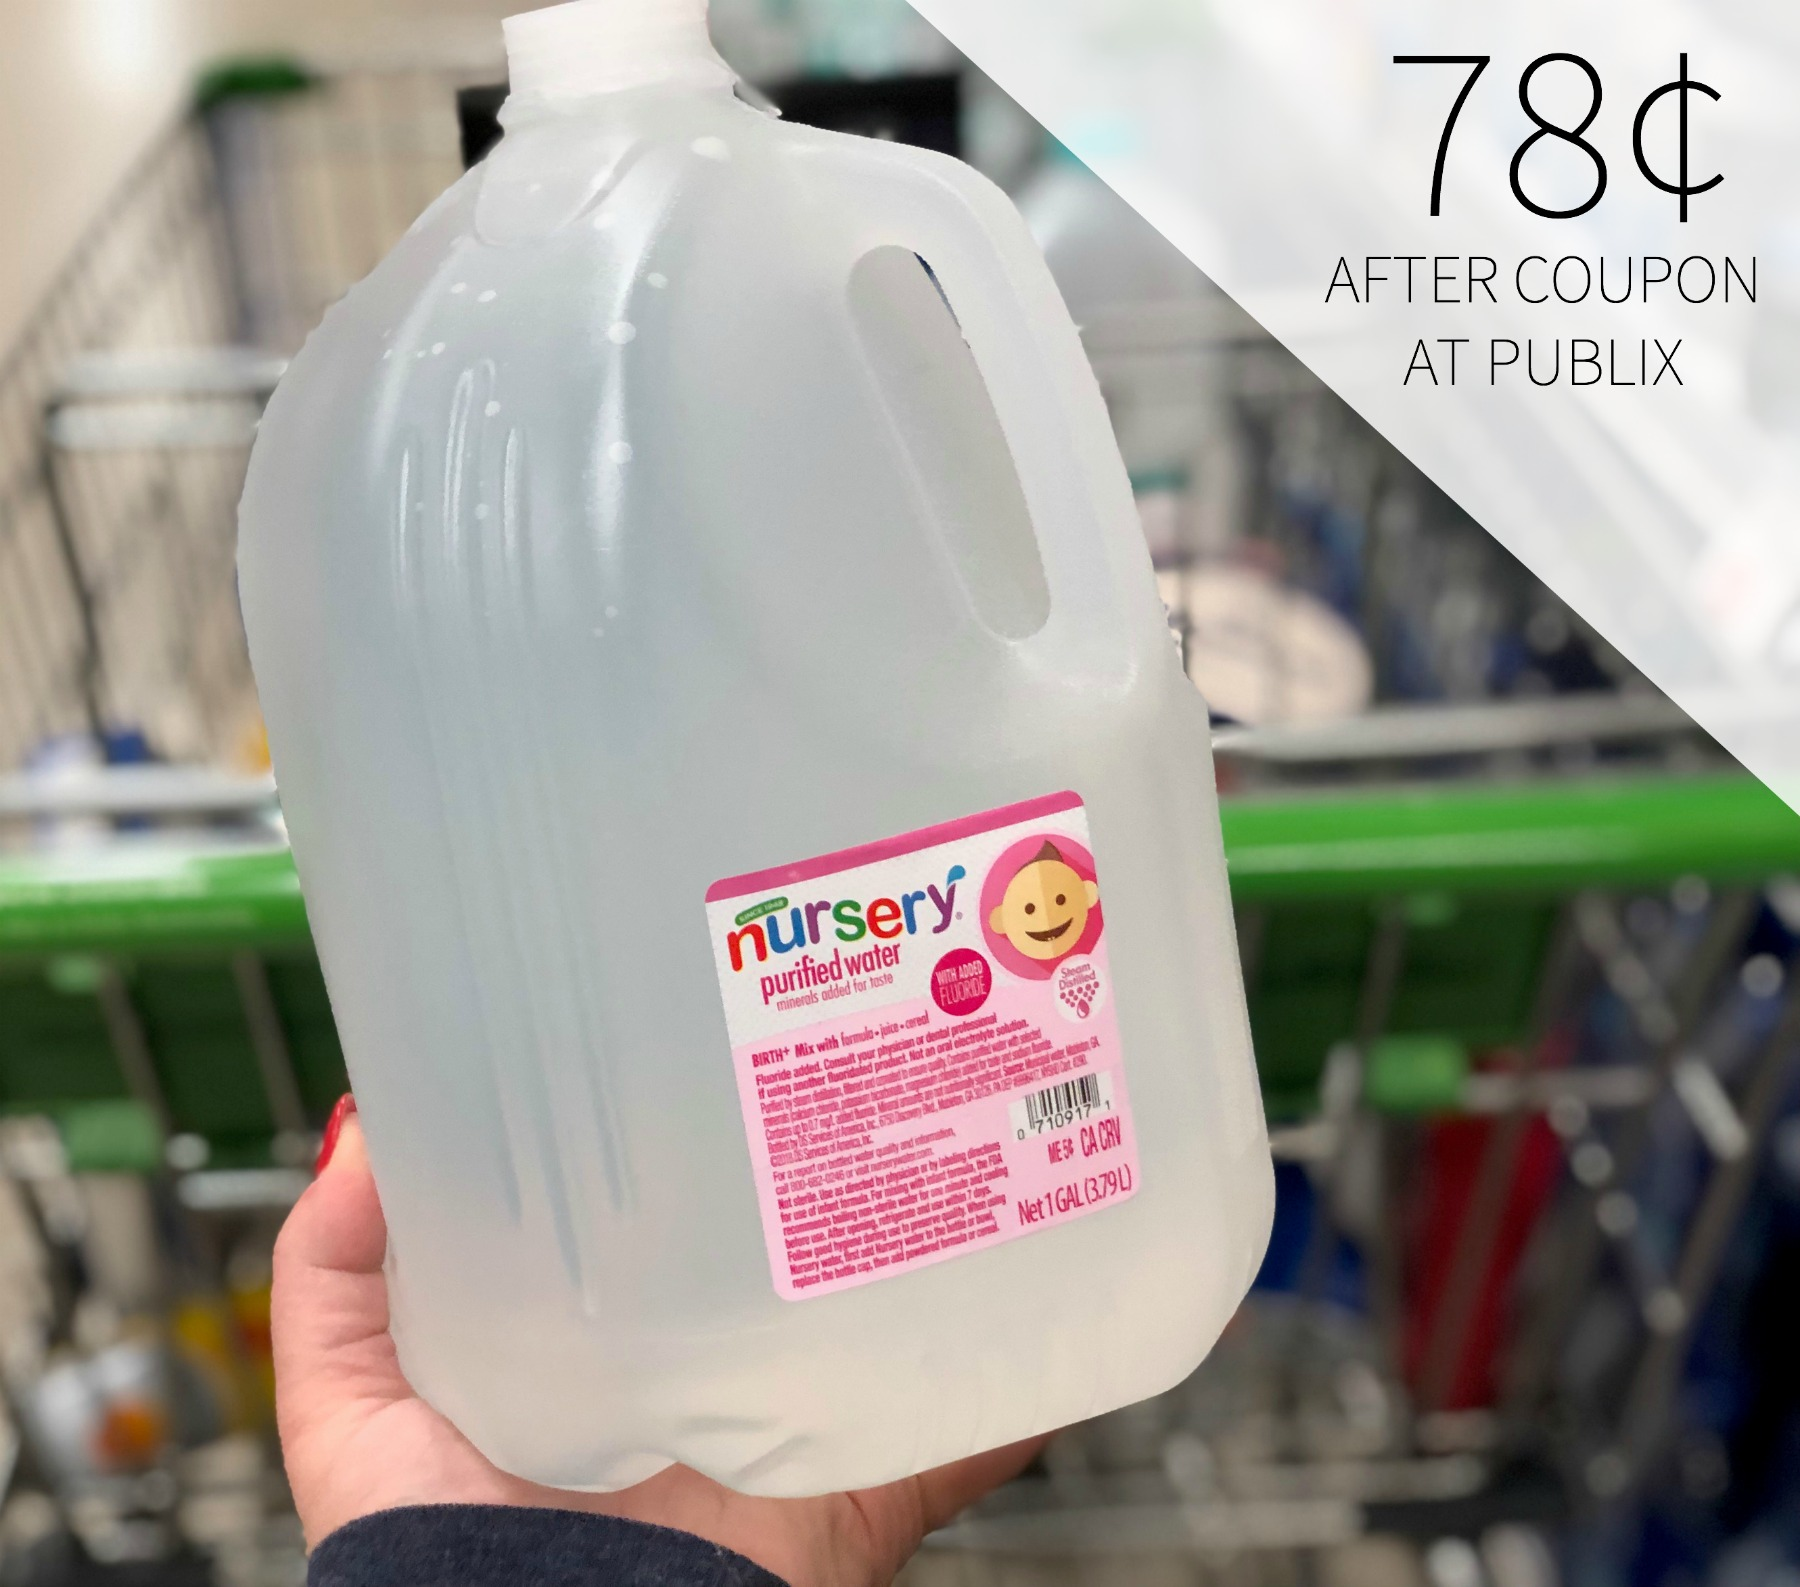 Nursery Water 1 Gallon Jugs Only 78 At Publix